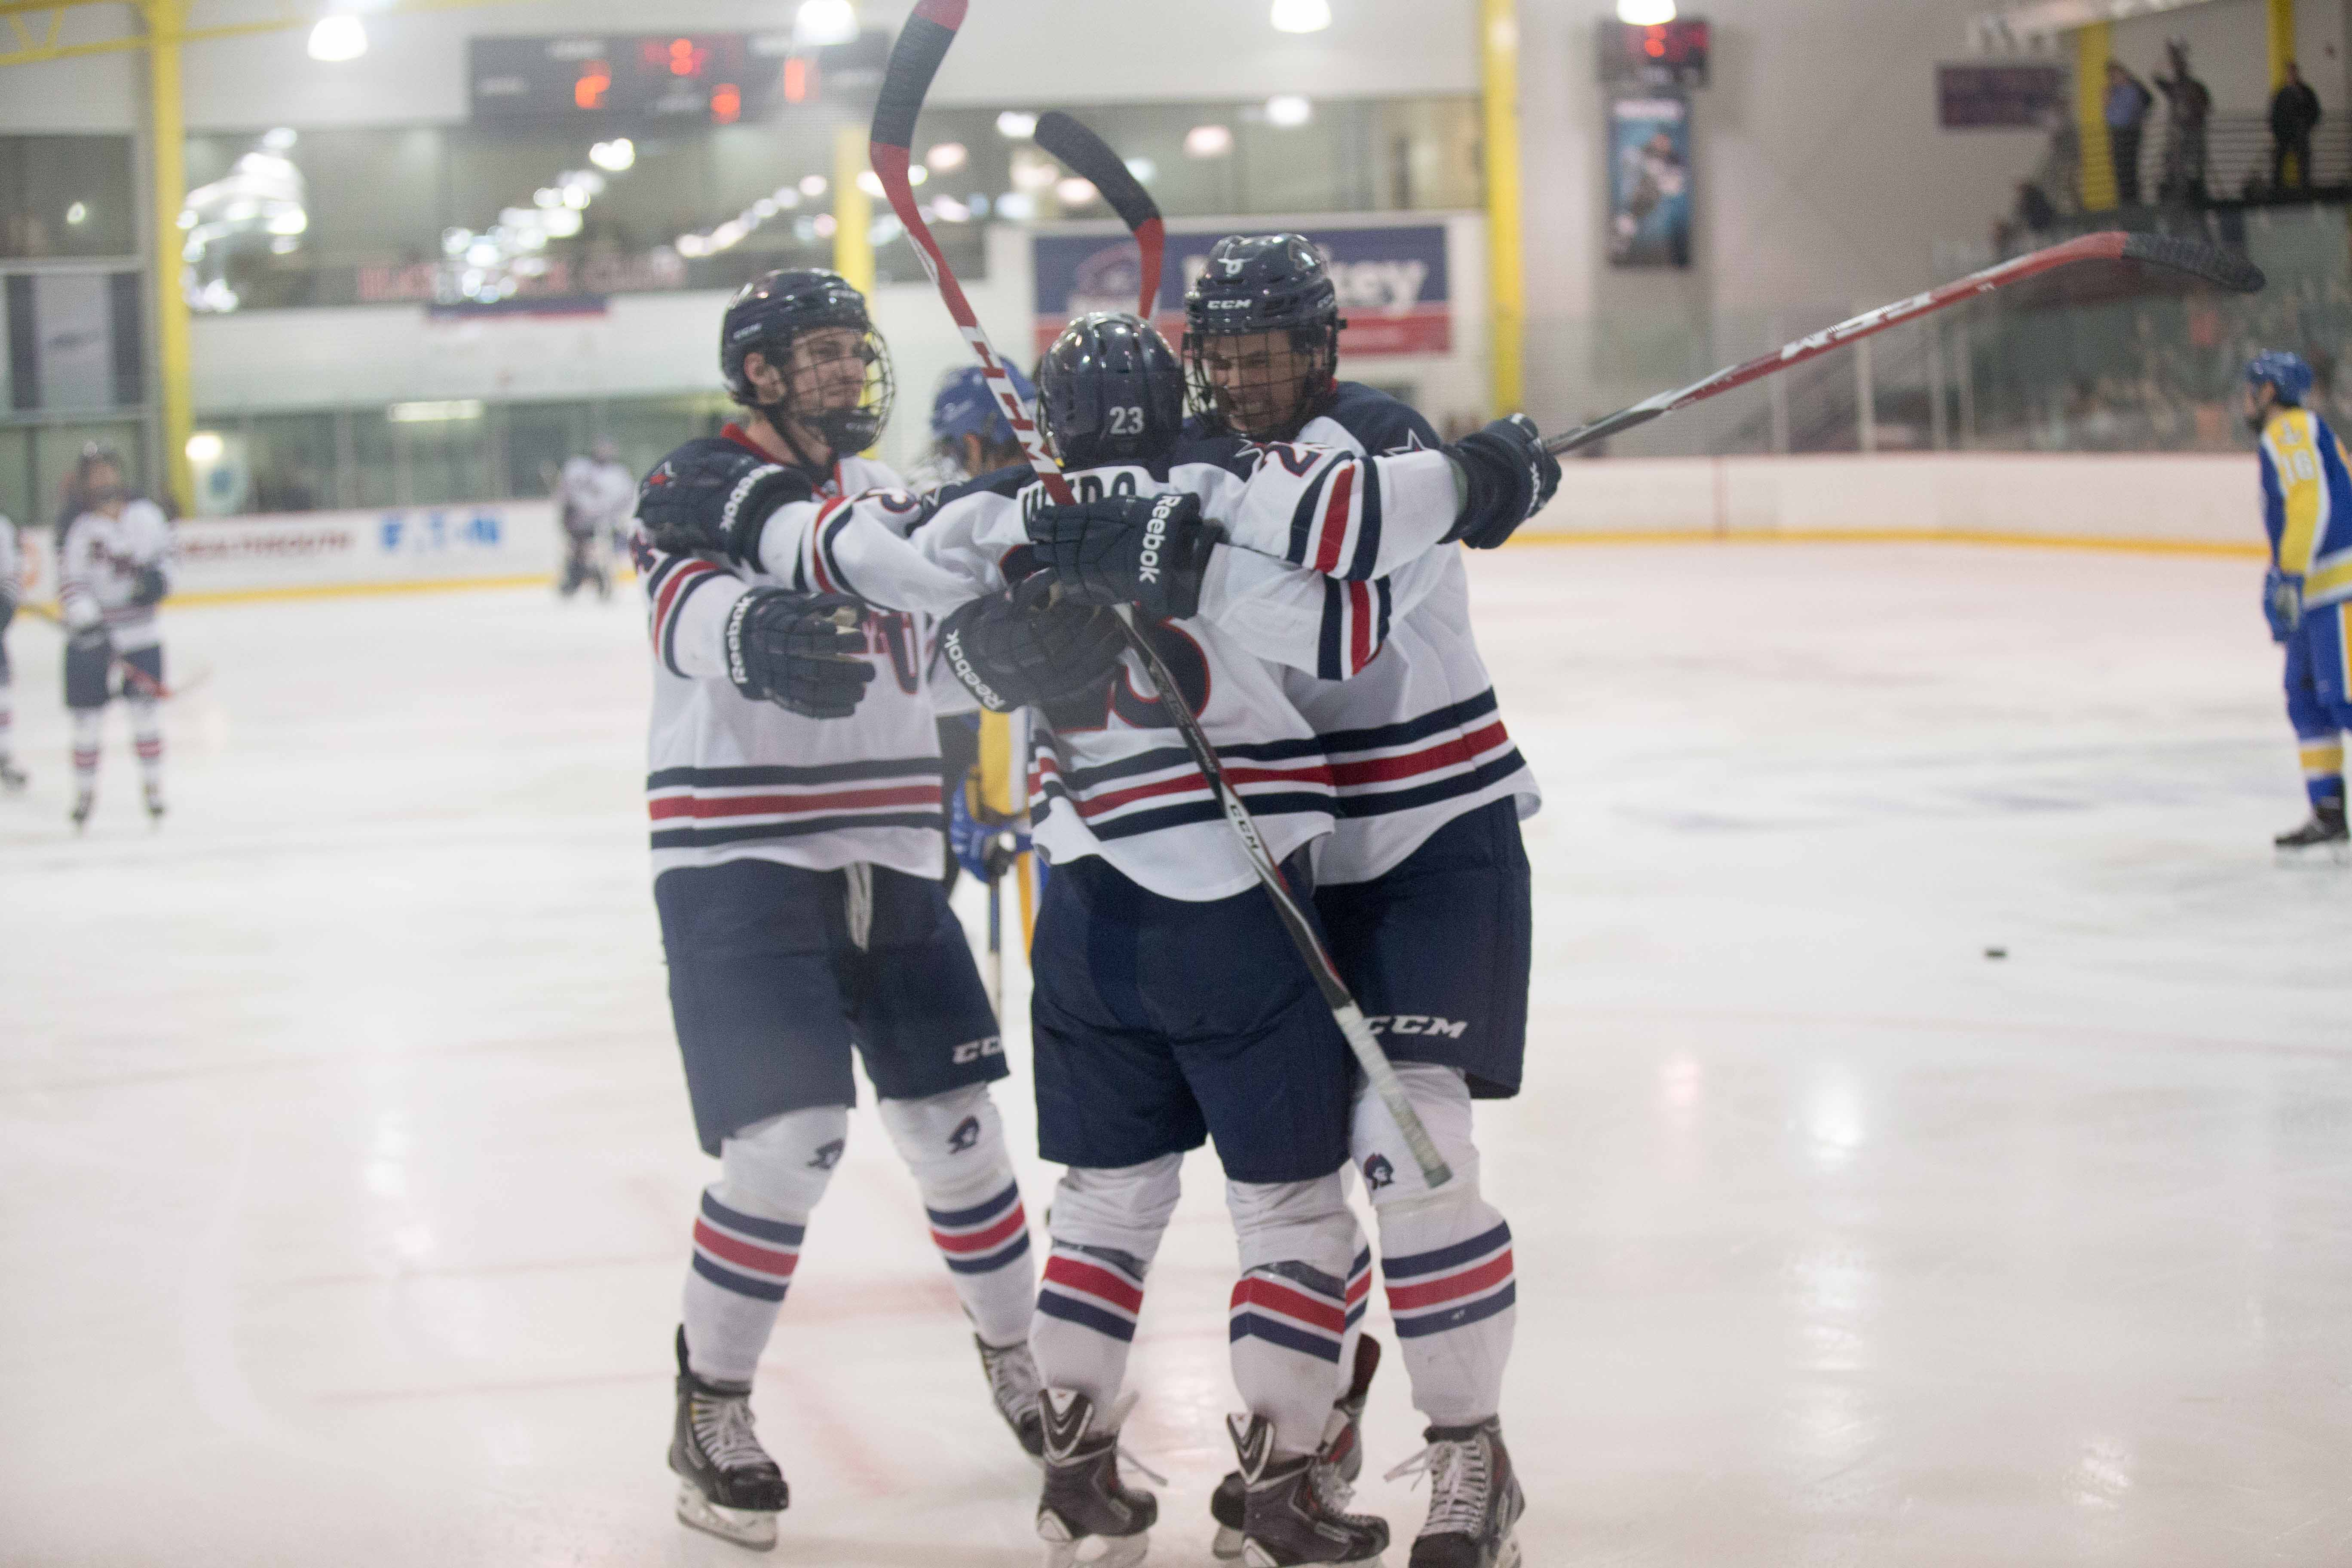 Robert Morris used a hat trick from Brady Ferguson and a 27 save performance from Francis Marotte to put away RIT Saturday night.